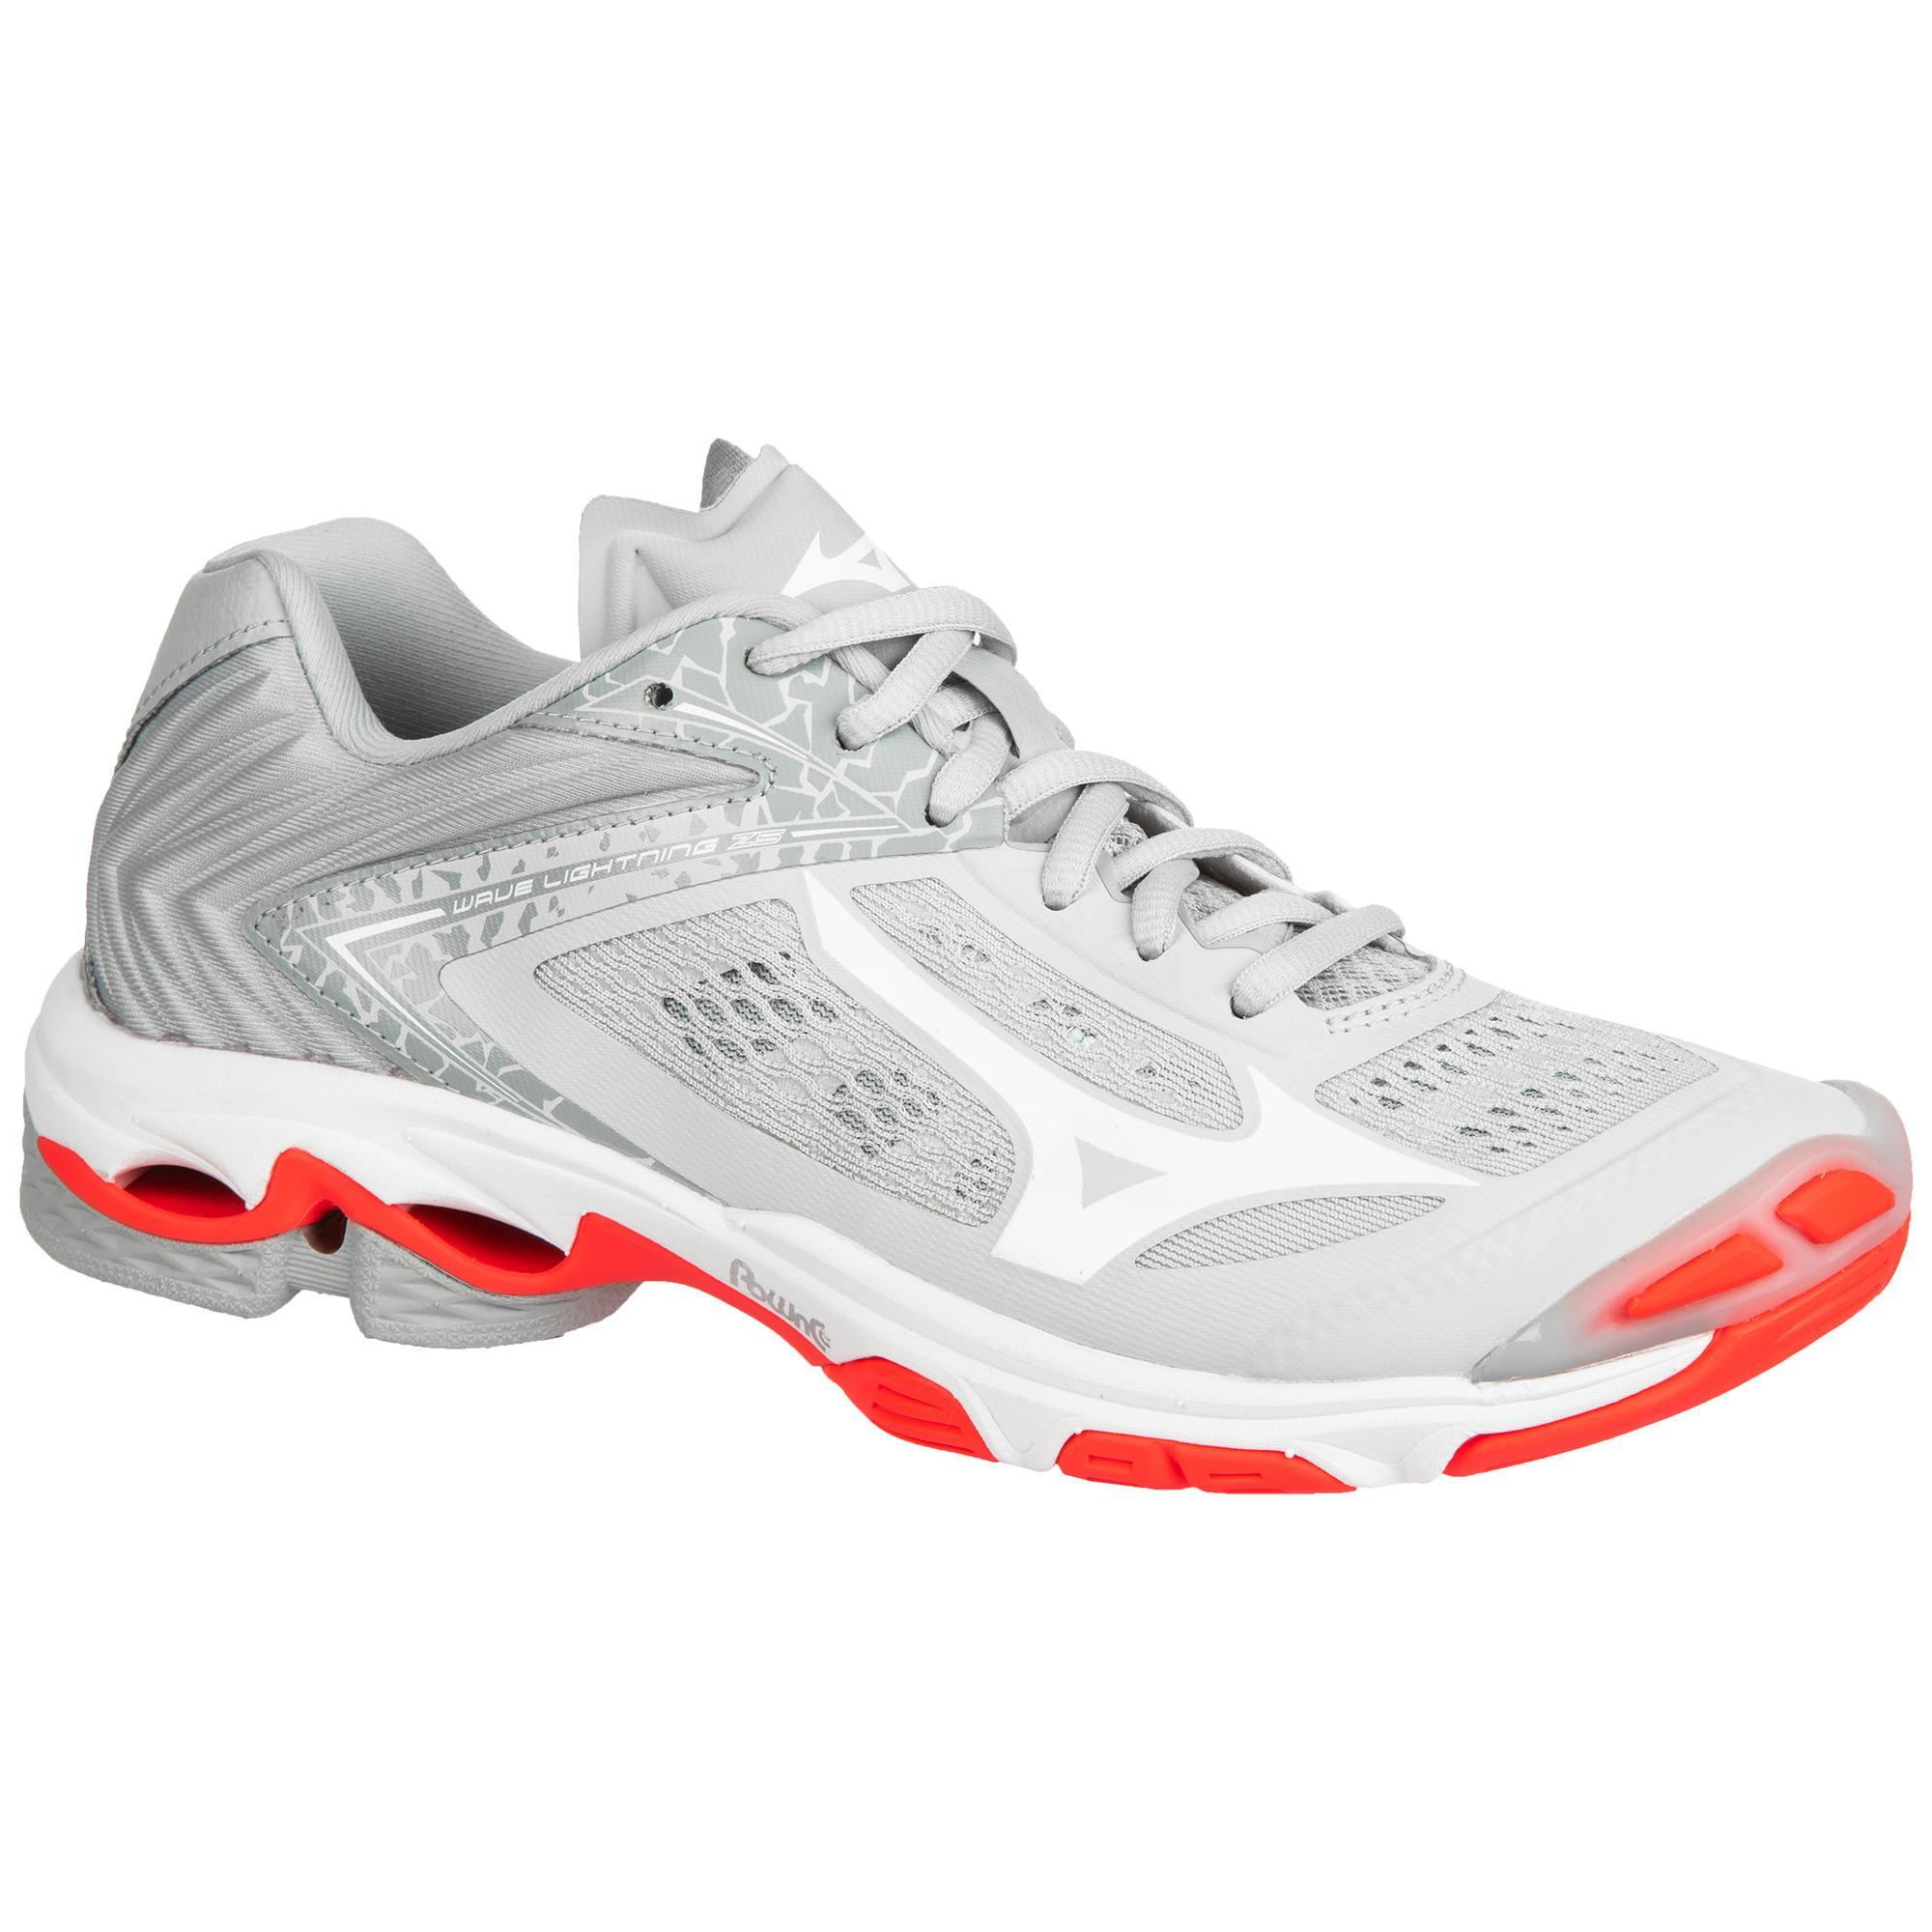 mizuno wave ultima 8 decathlon uk